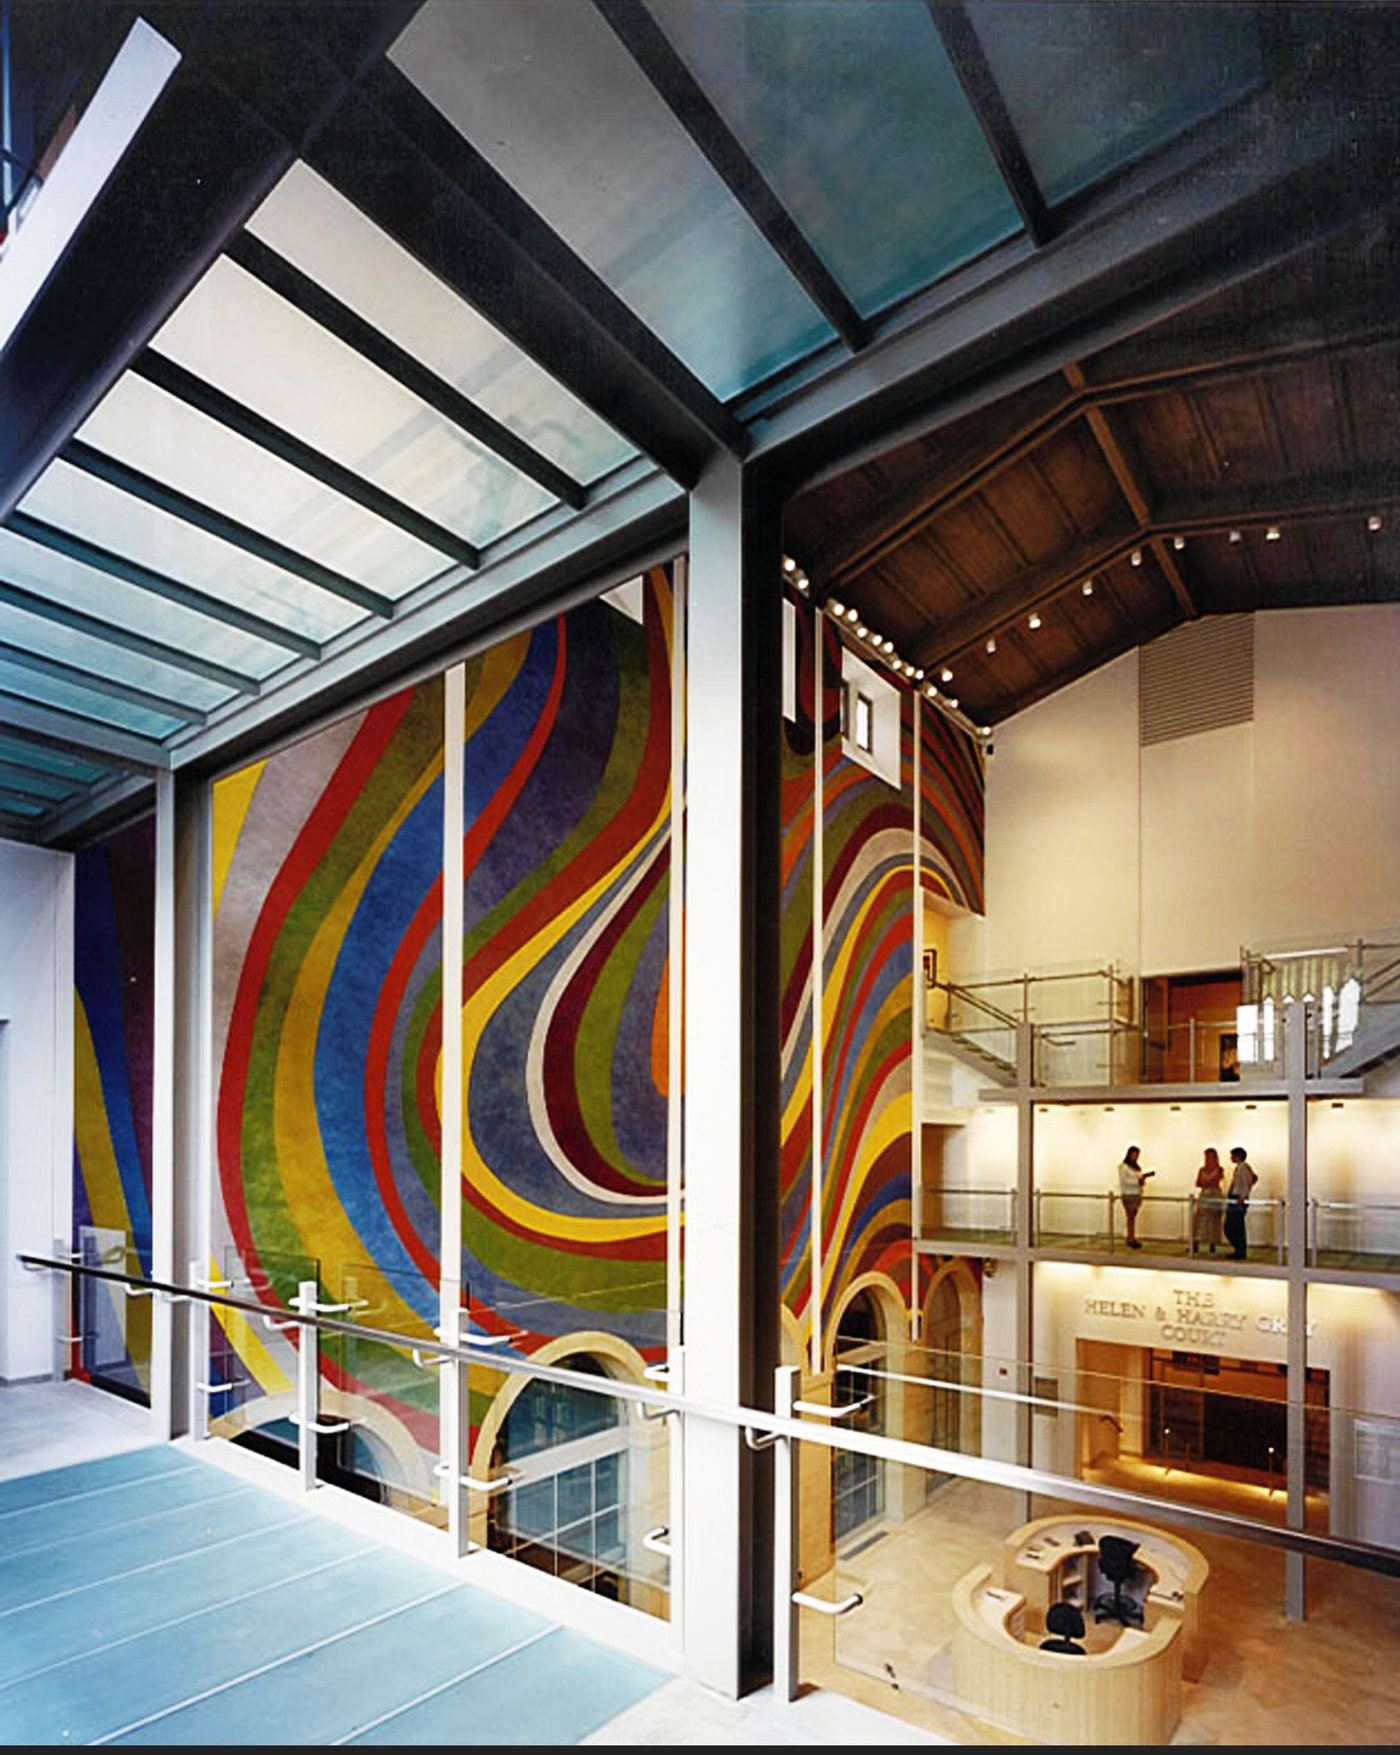 5 tskp wadsworth atheneum the helen and harry gray court glass bridges level 2 above main entrance mural shot 1400 0x0x2338x2931 q85